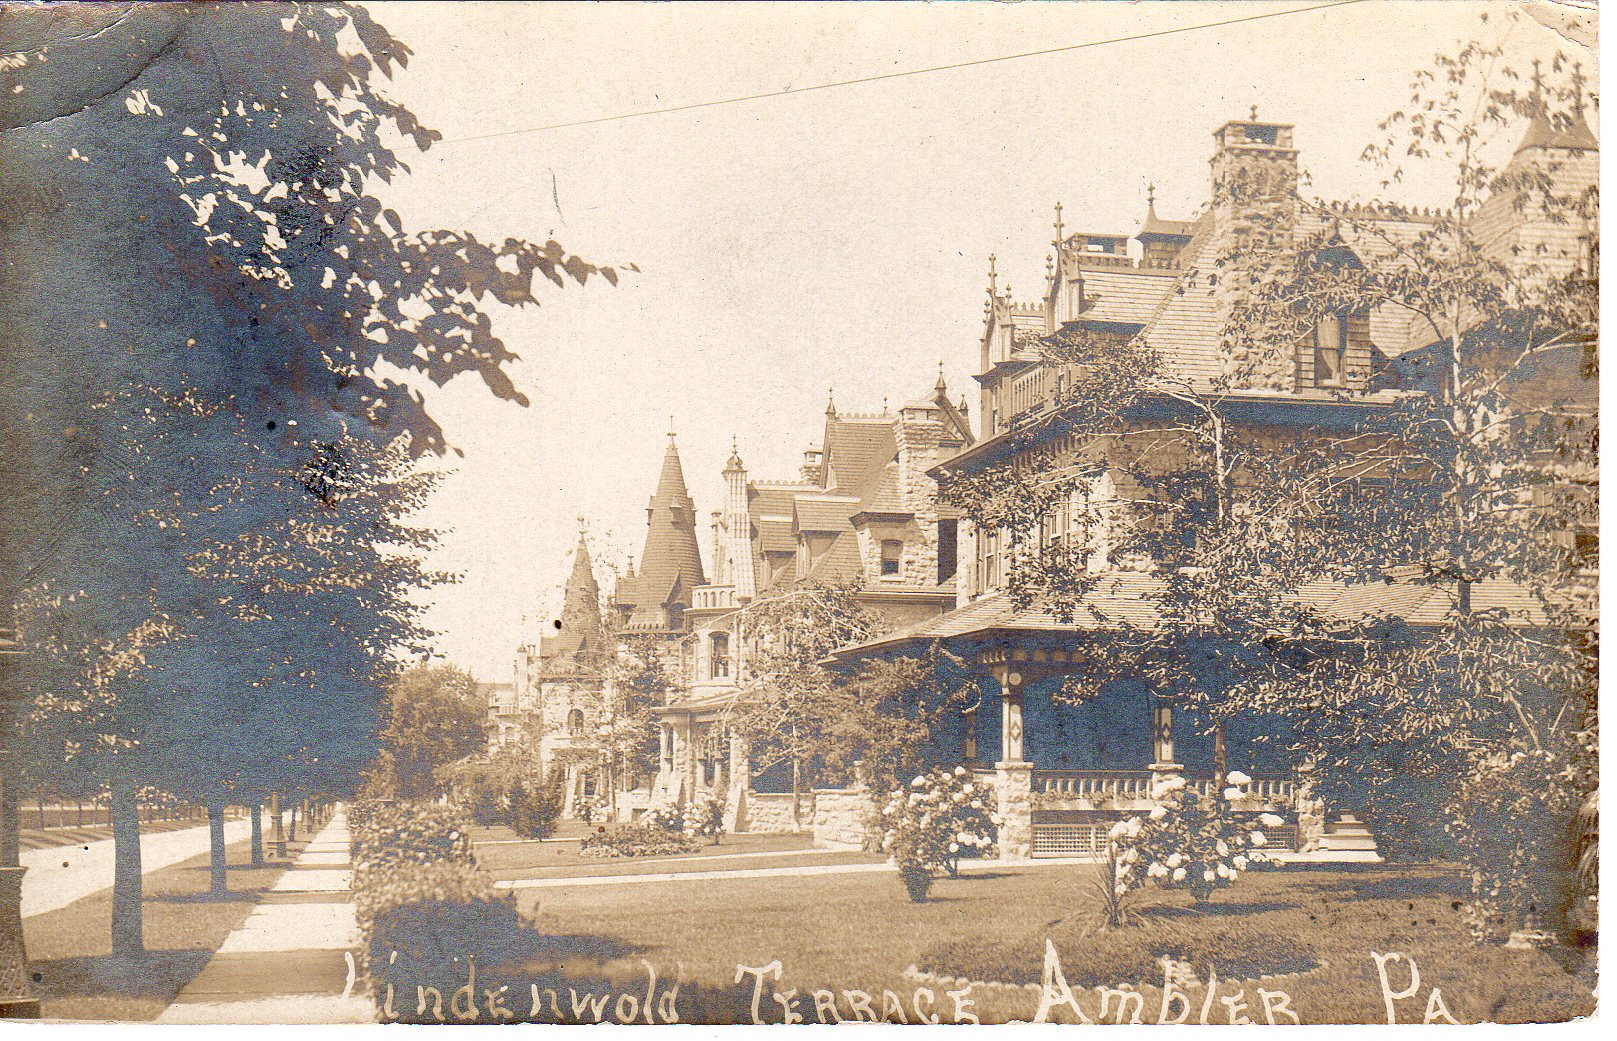 Post Card Collection (E Simon)_2682_36_Lindenwold Terrace, Ambler, Pa_9 Sep 1908